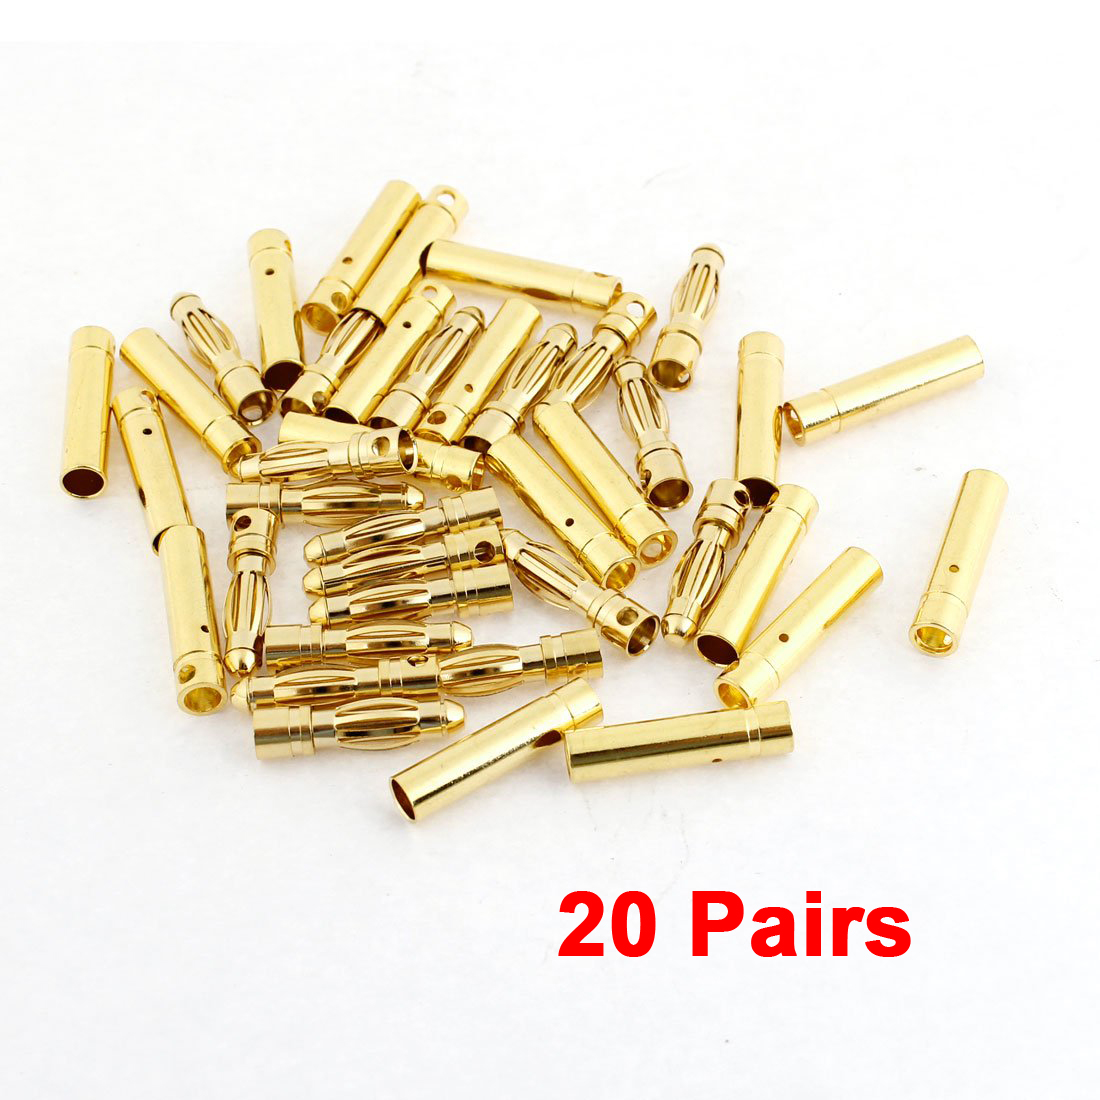 New 20 Pairs Gold Tone Metal RC Banana Bullet Plug Connector Male Female 4mm цена